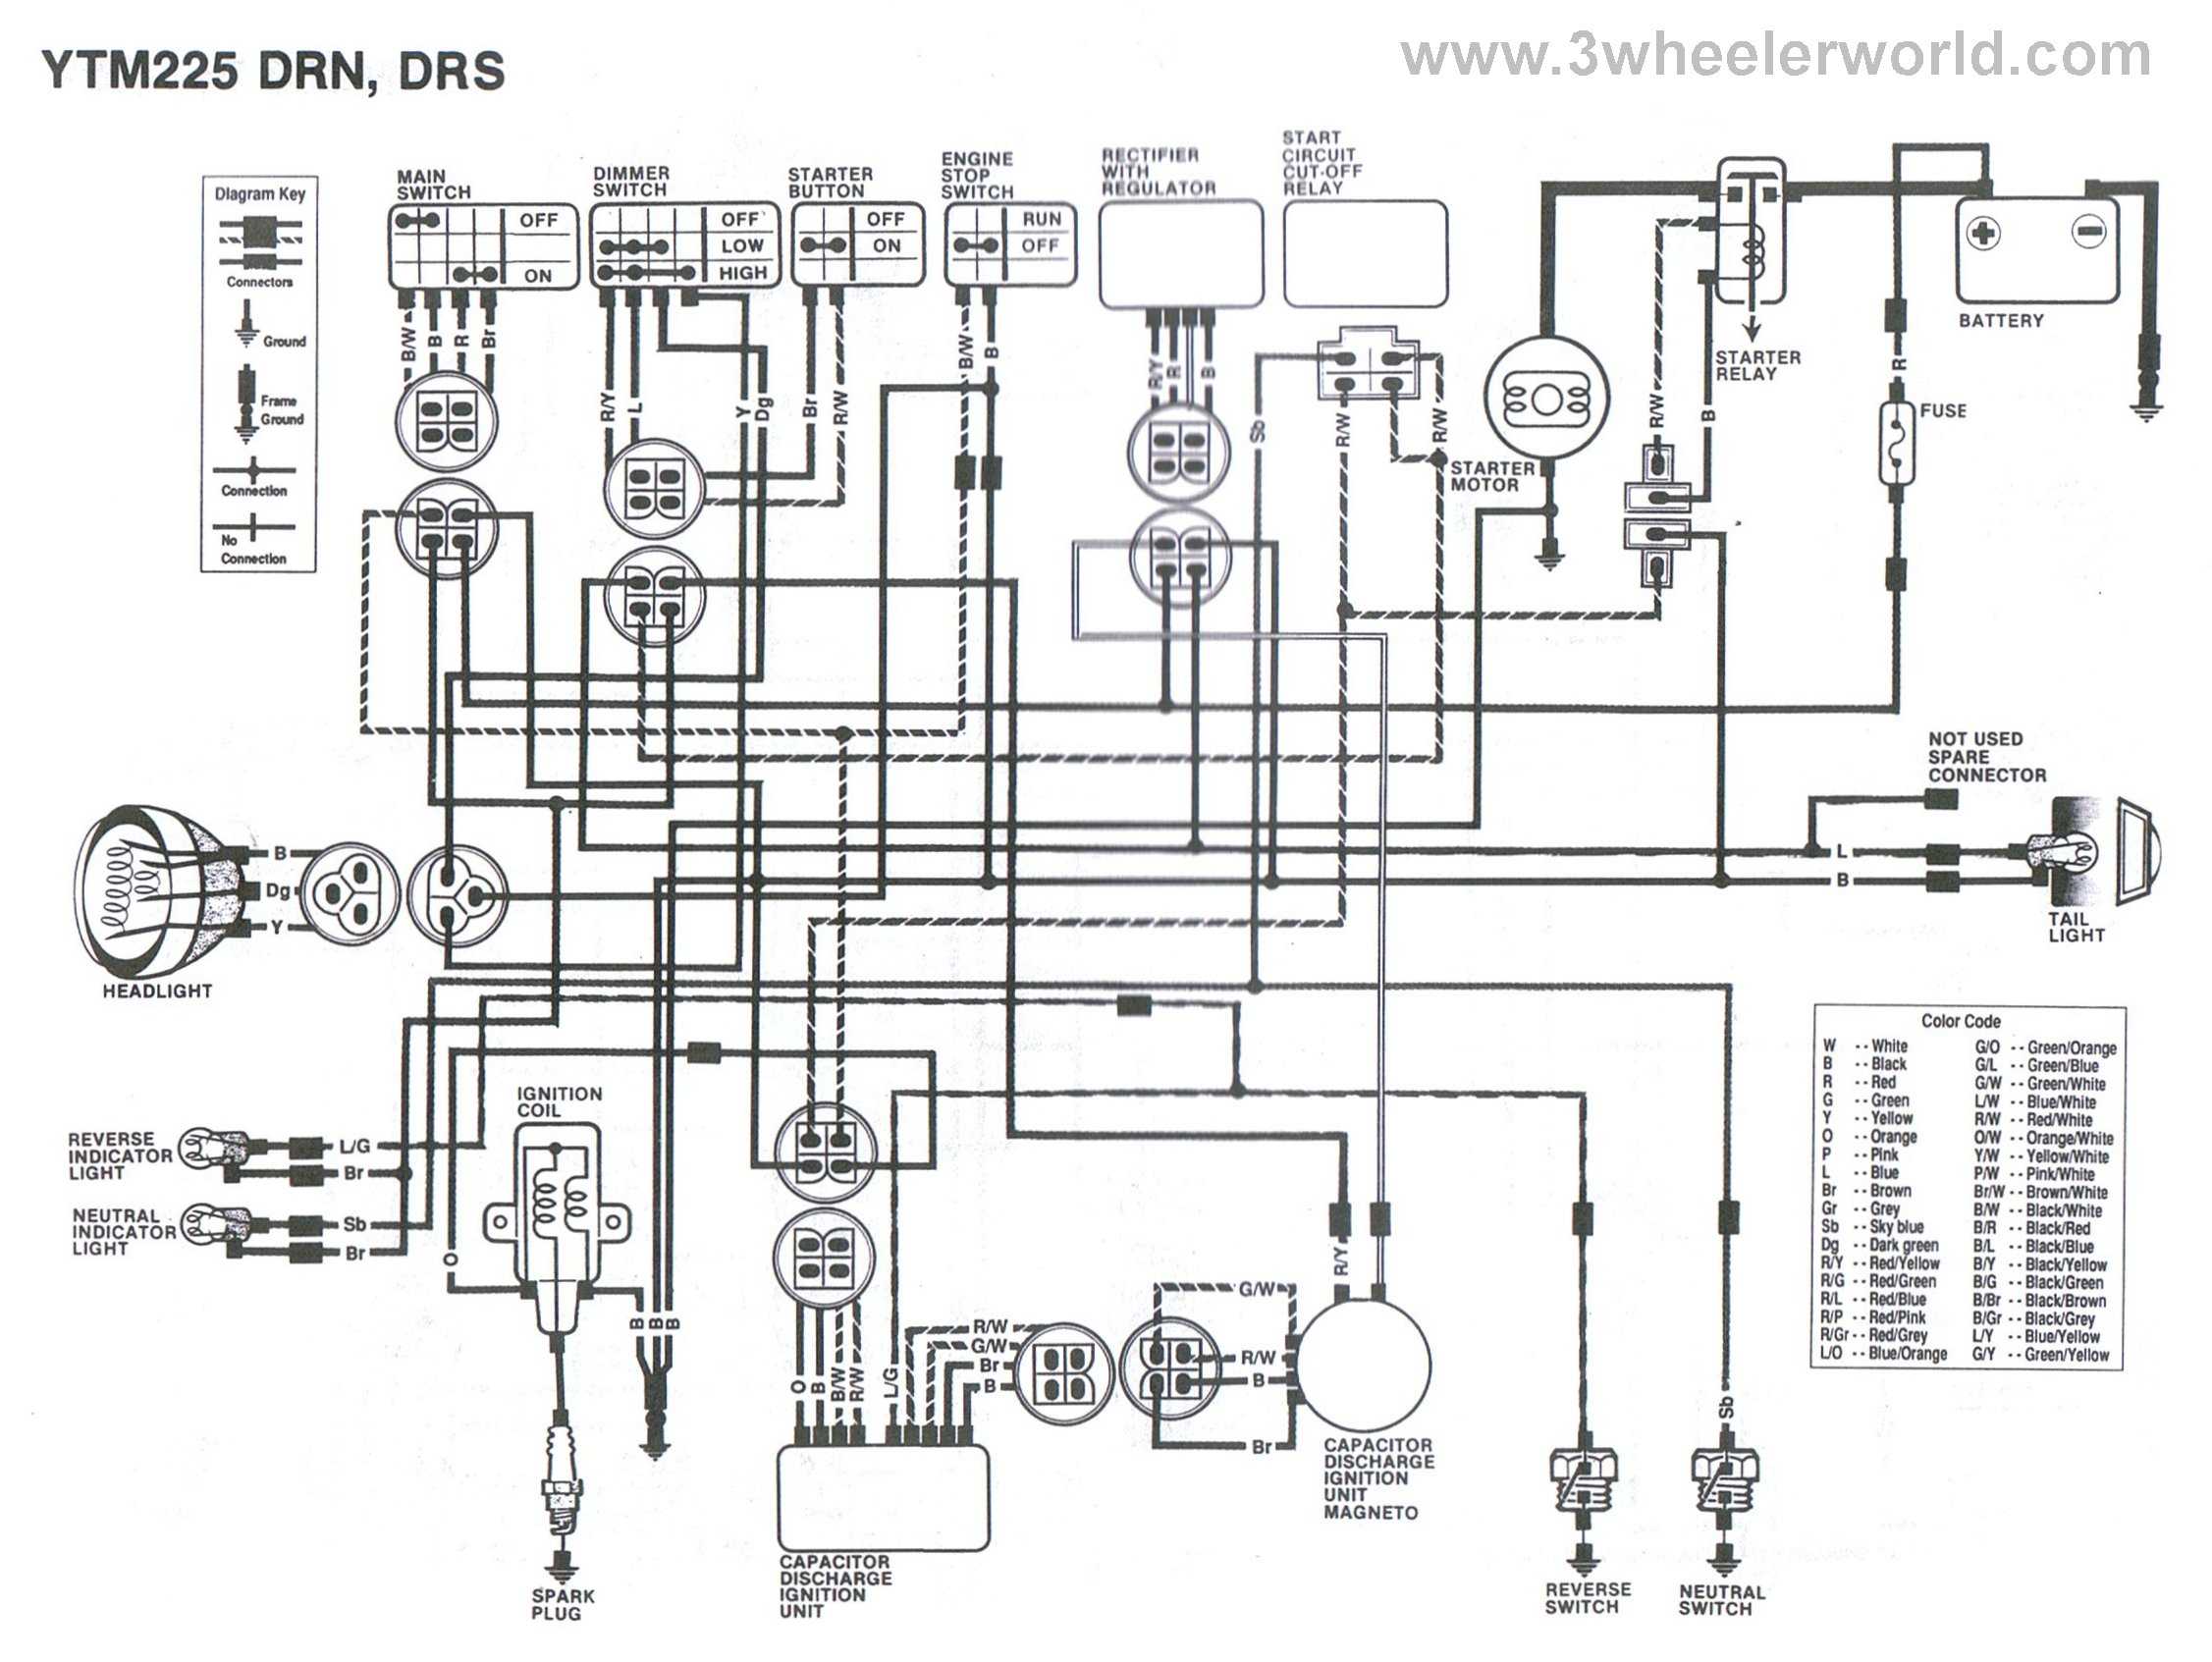 YTM225DRNDRS 3 wheeler world tech help yamaha wiring diagrams yamaha moto 4 225 wiring diagram at n-0.co